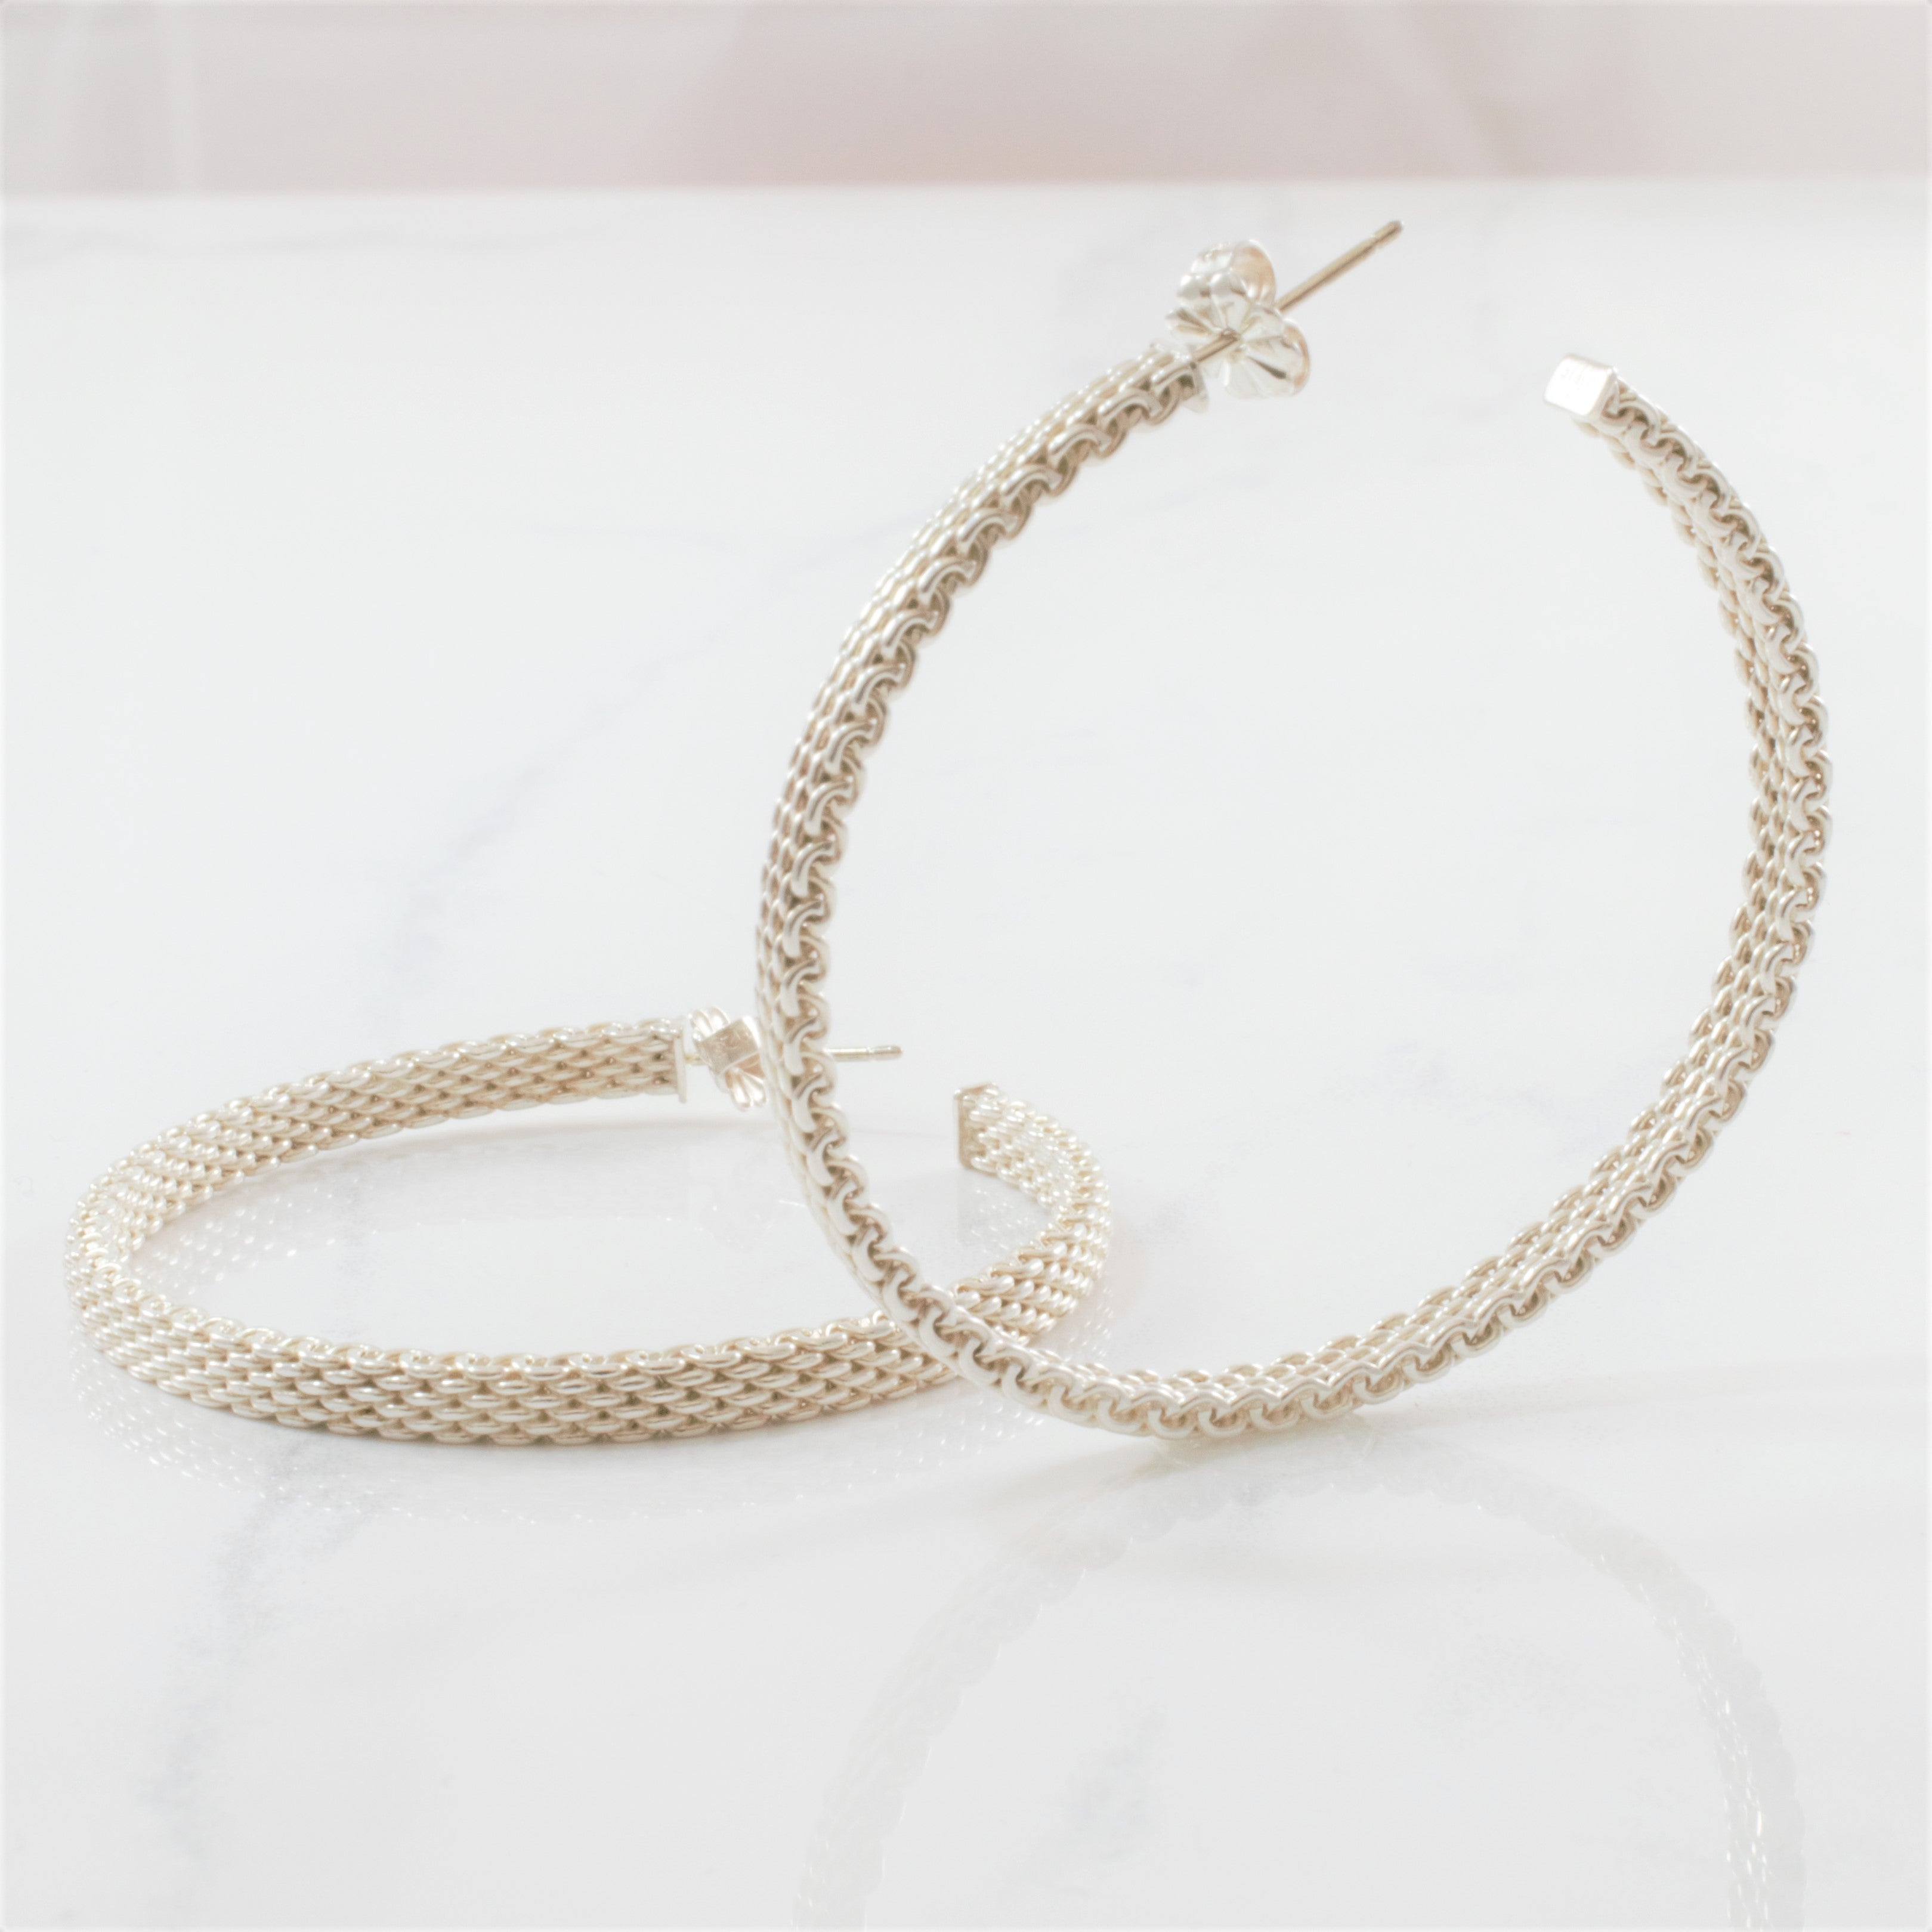 'Tiffany & Co.' Woven Hoops